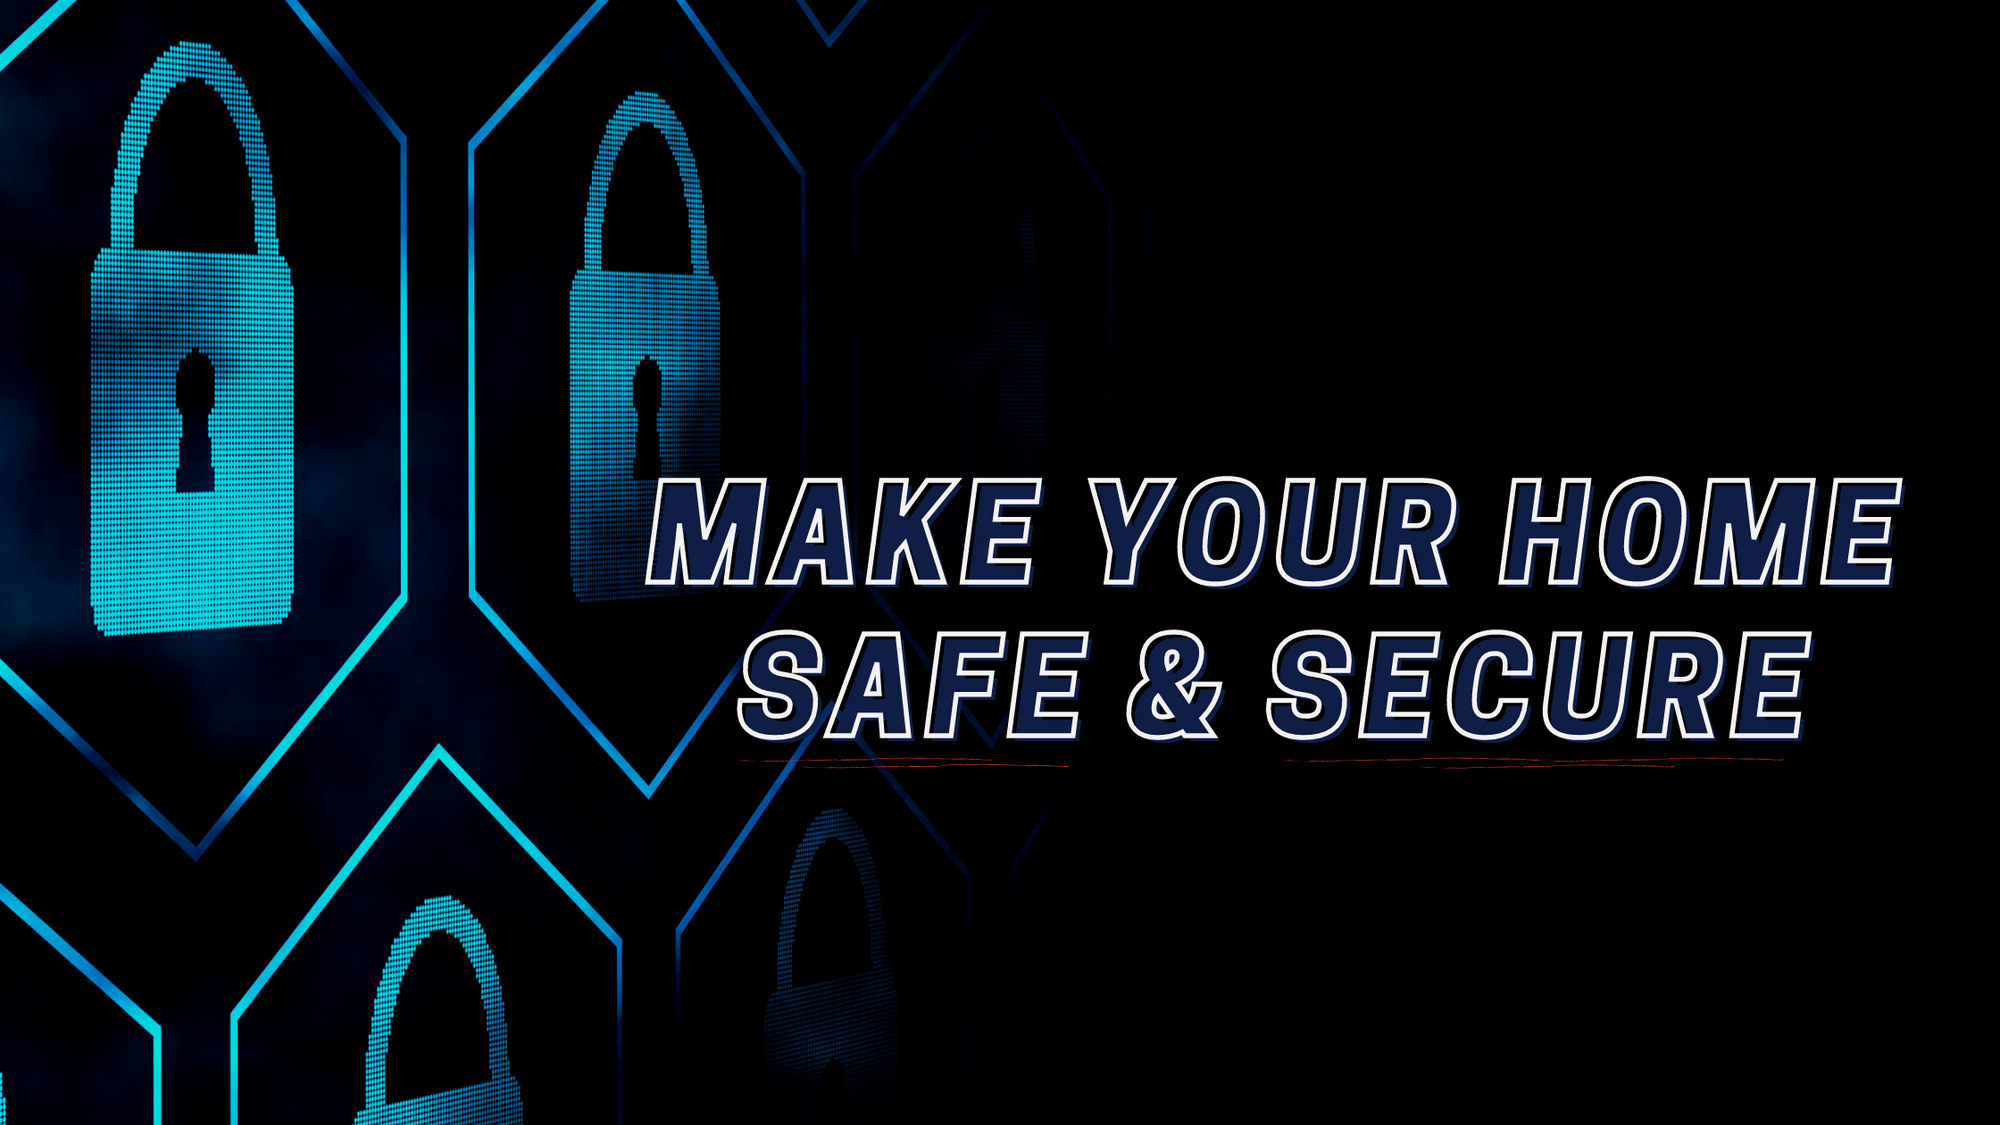 Make Your Home Safe and Secure